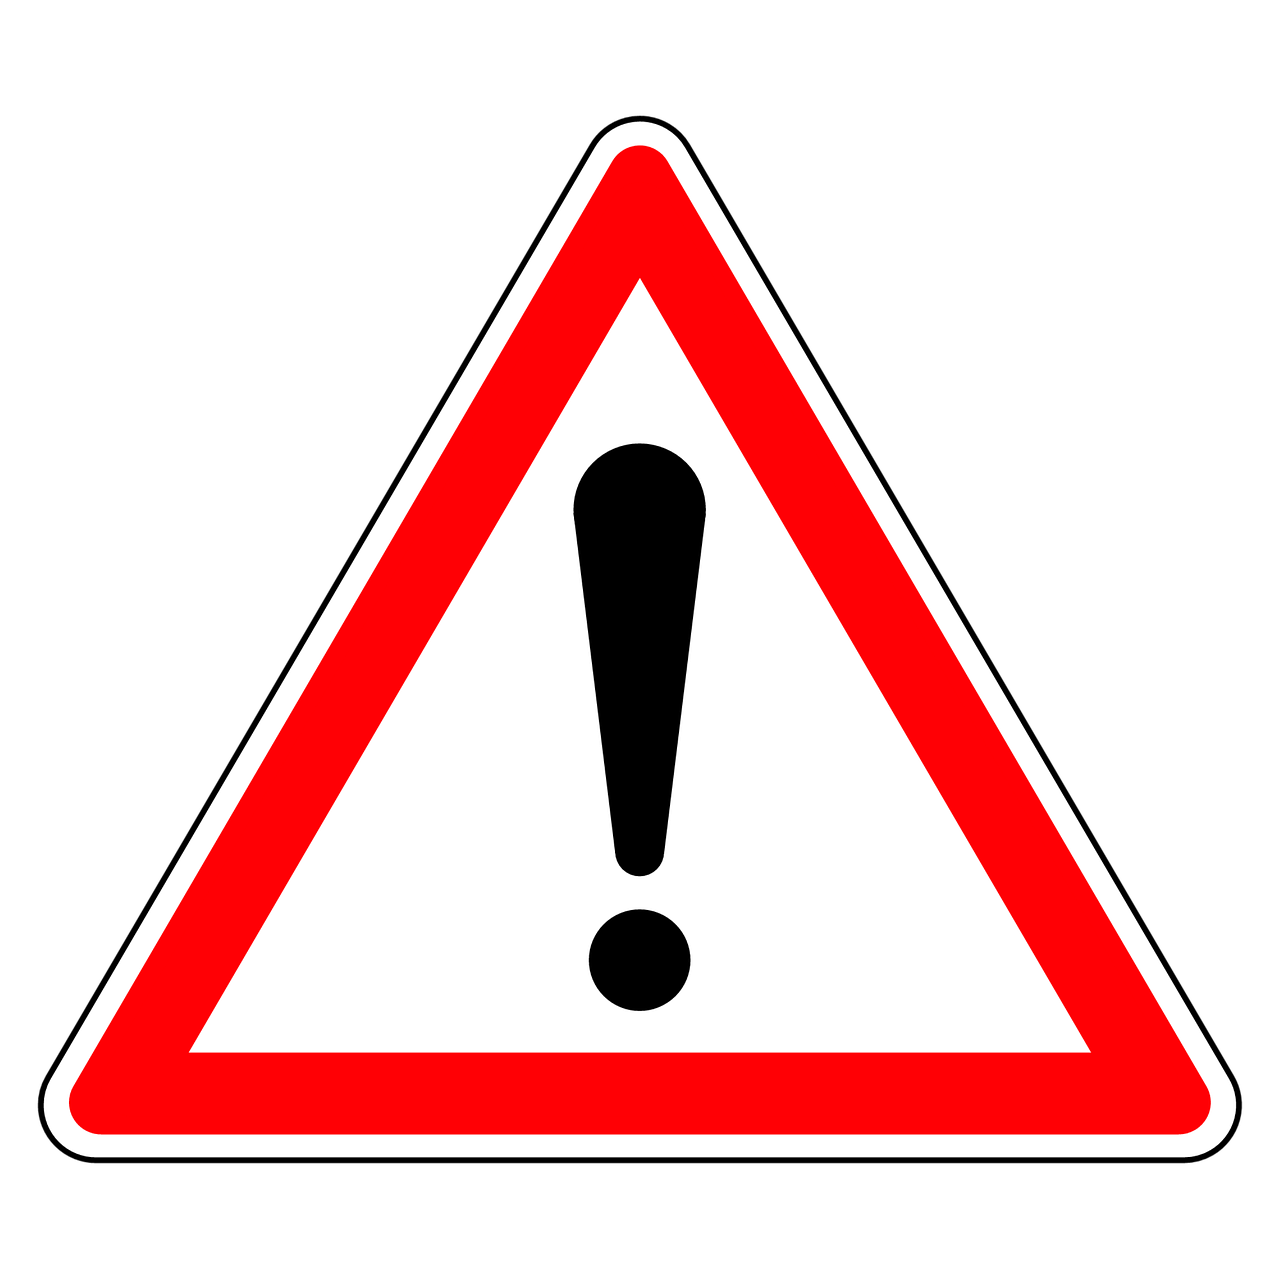 Panneau Attention Triangle - Image gratuite sur Pixabay